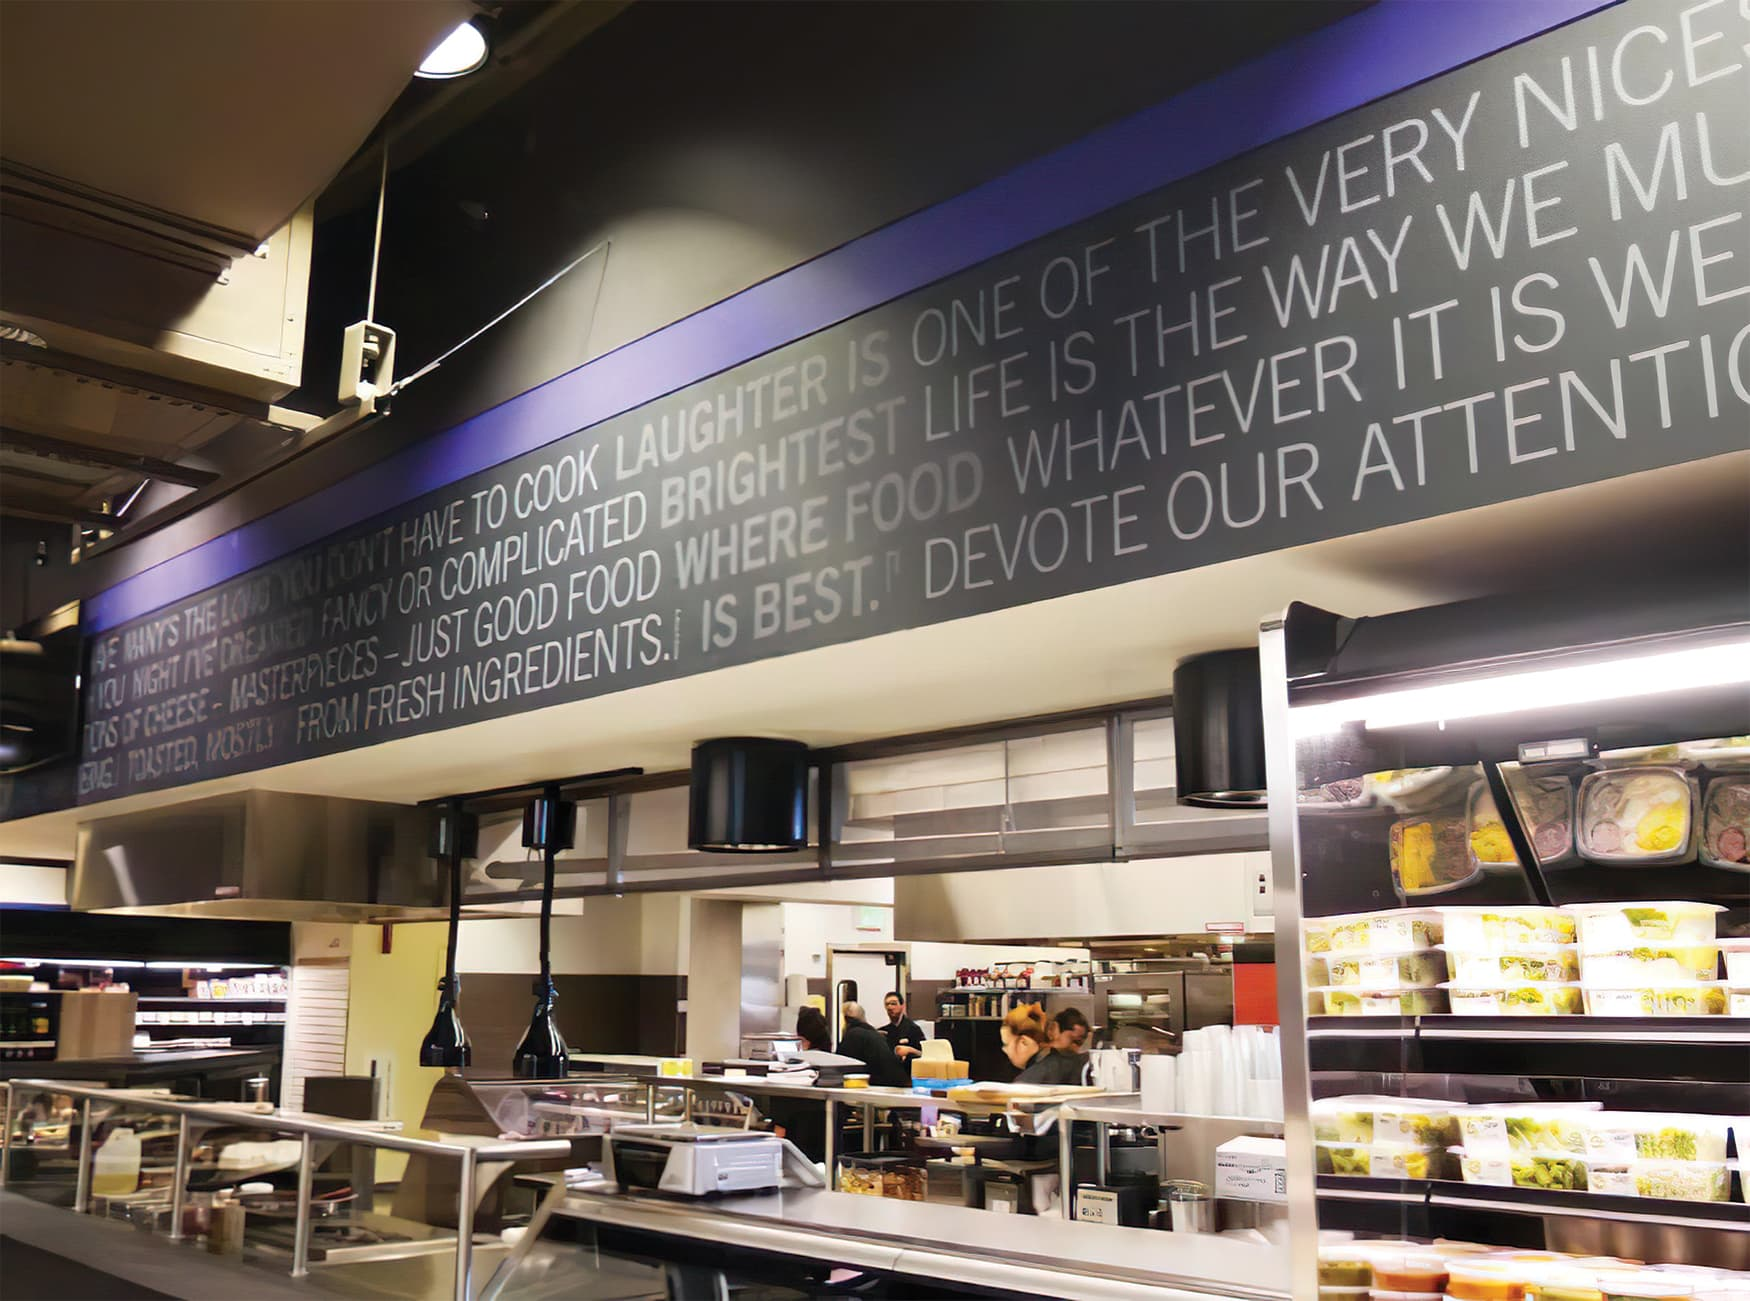 District Market, a student market located by the University of Washington's campus. Environmental Graphics.